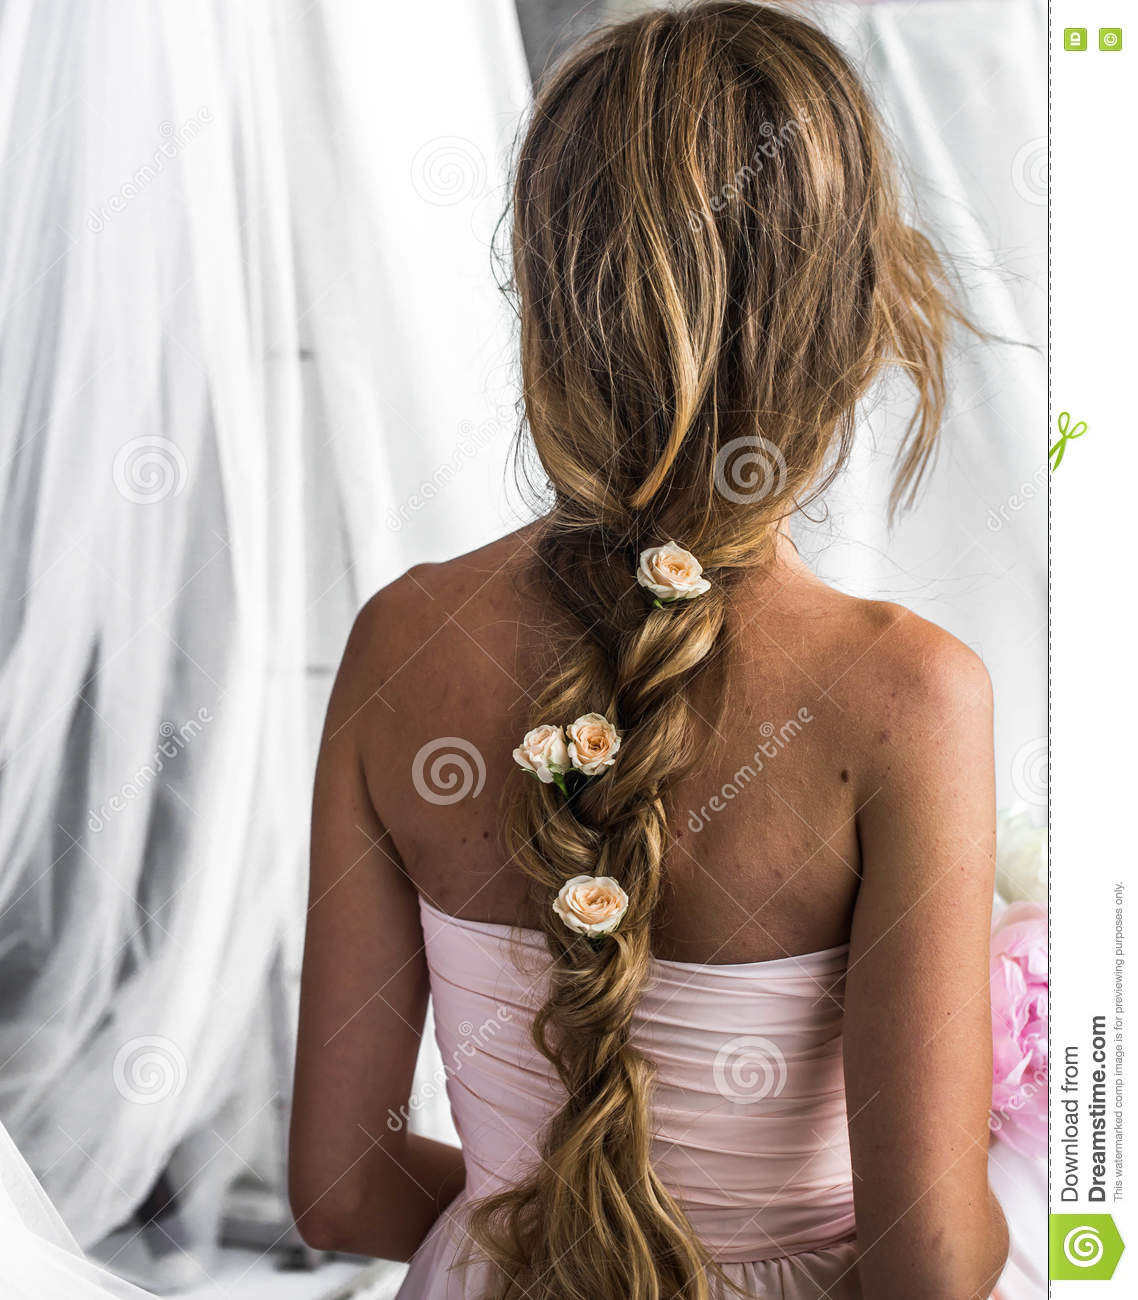 Beautiful young girl with long hair flowers the tenderness of the beautiful young girl with long hair flowers the tenderness of the mystery in a braid steed back izmirmasajfo